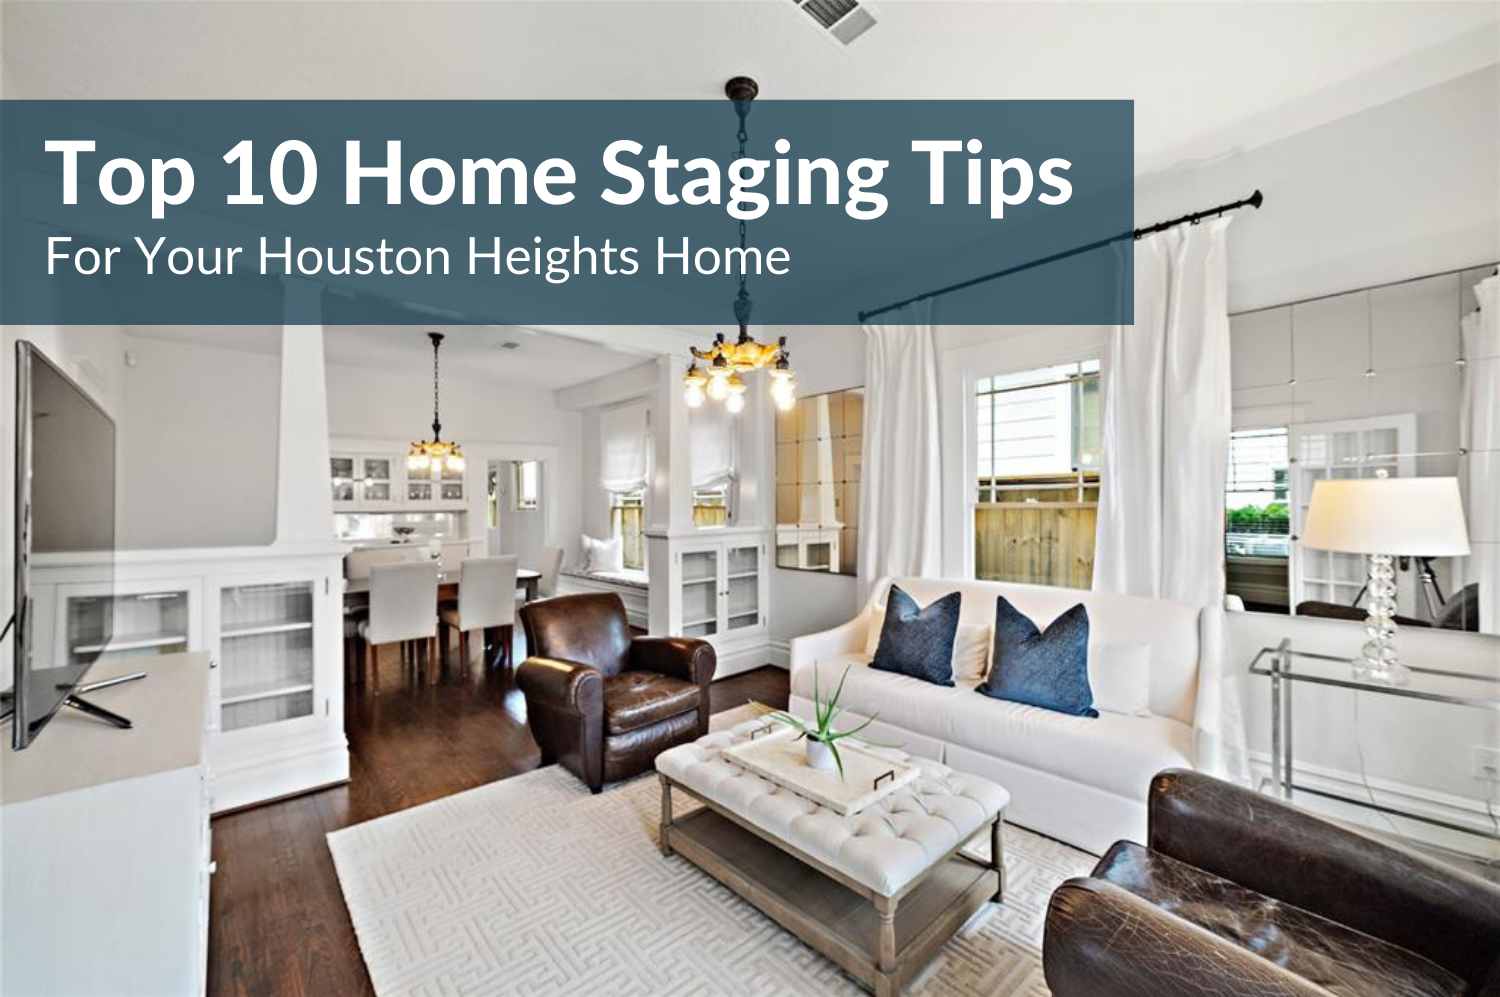 Sell Your Heights Home Fast: Top 10 Home Staging Ideas